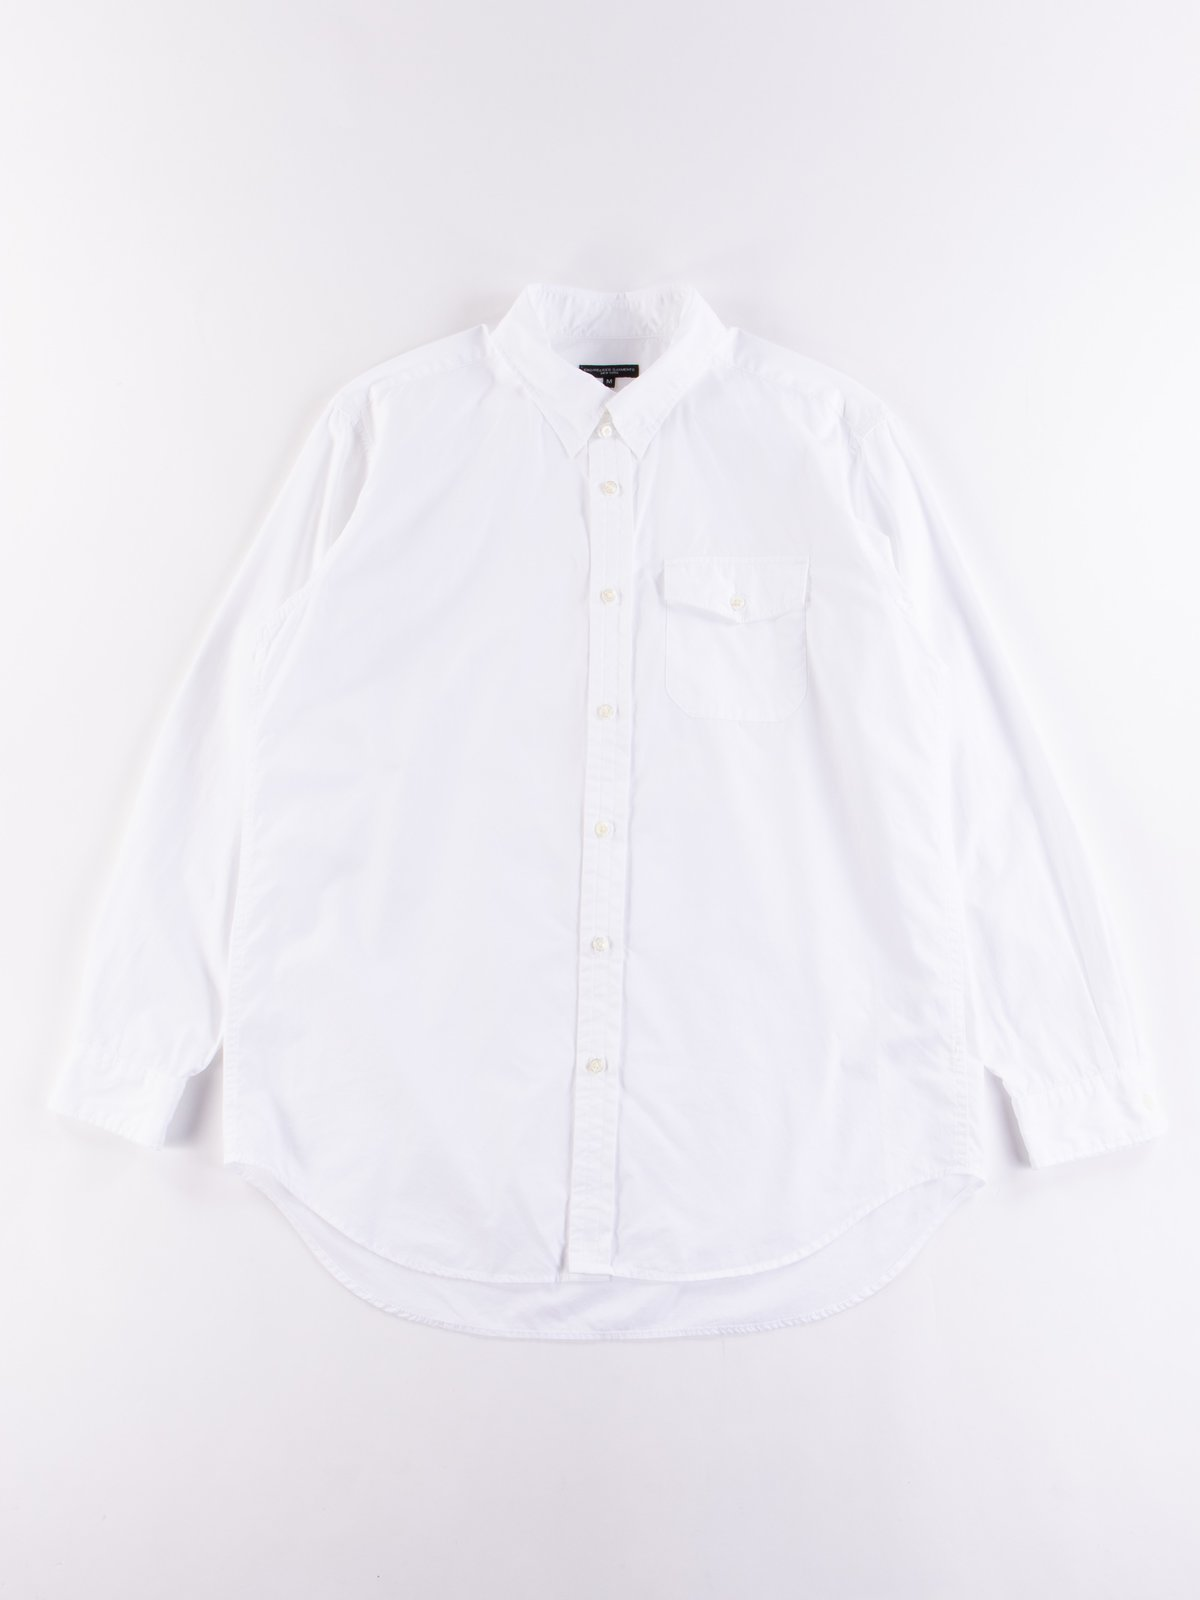 White 100's 2Ply Broadcloth Tab Collar Shirt - Image 1